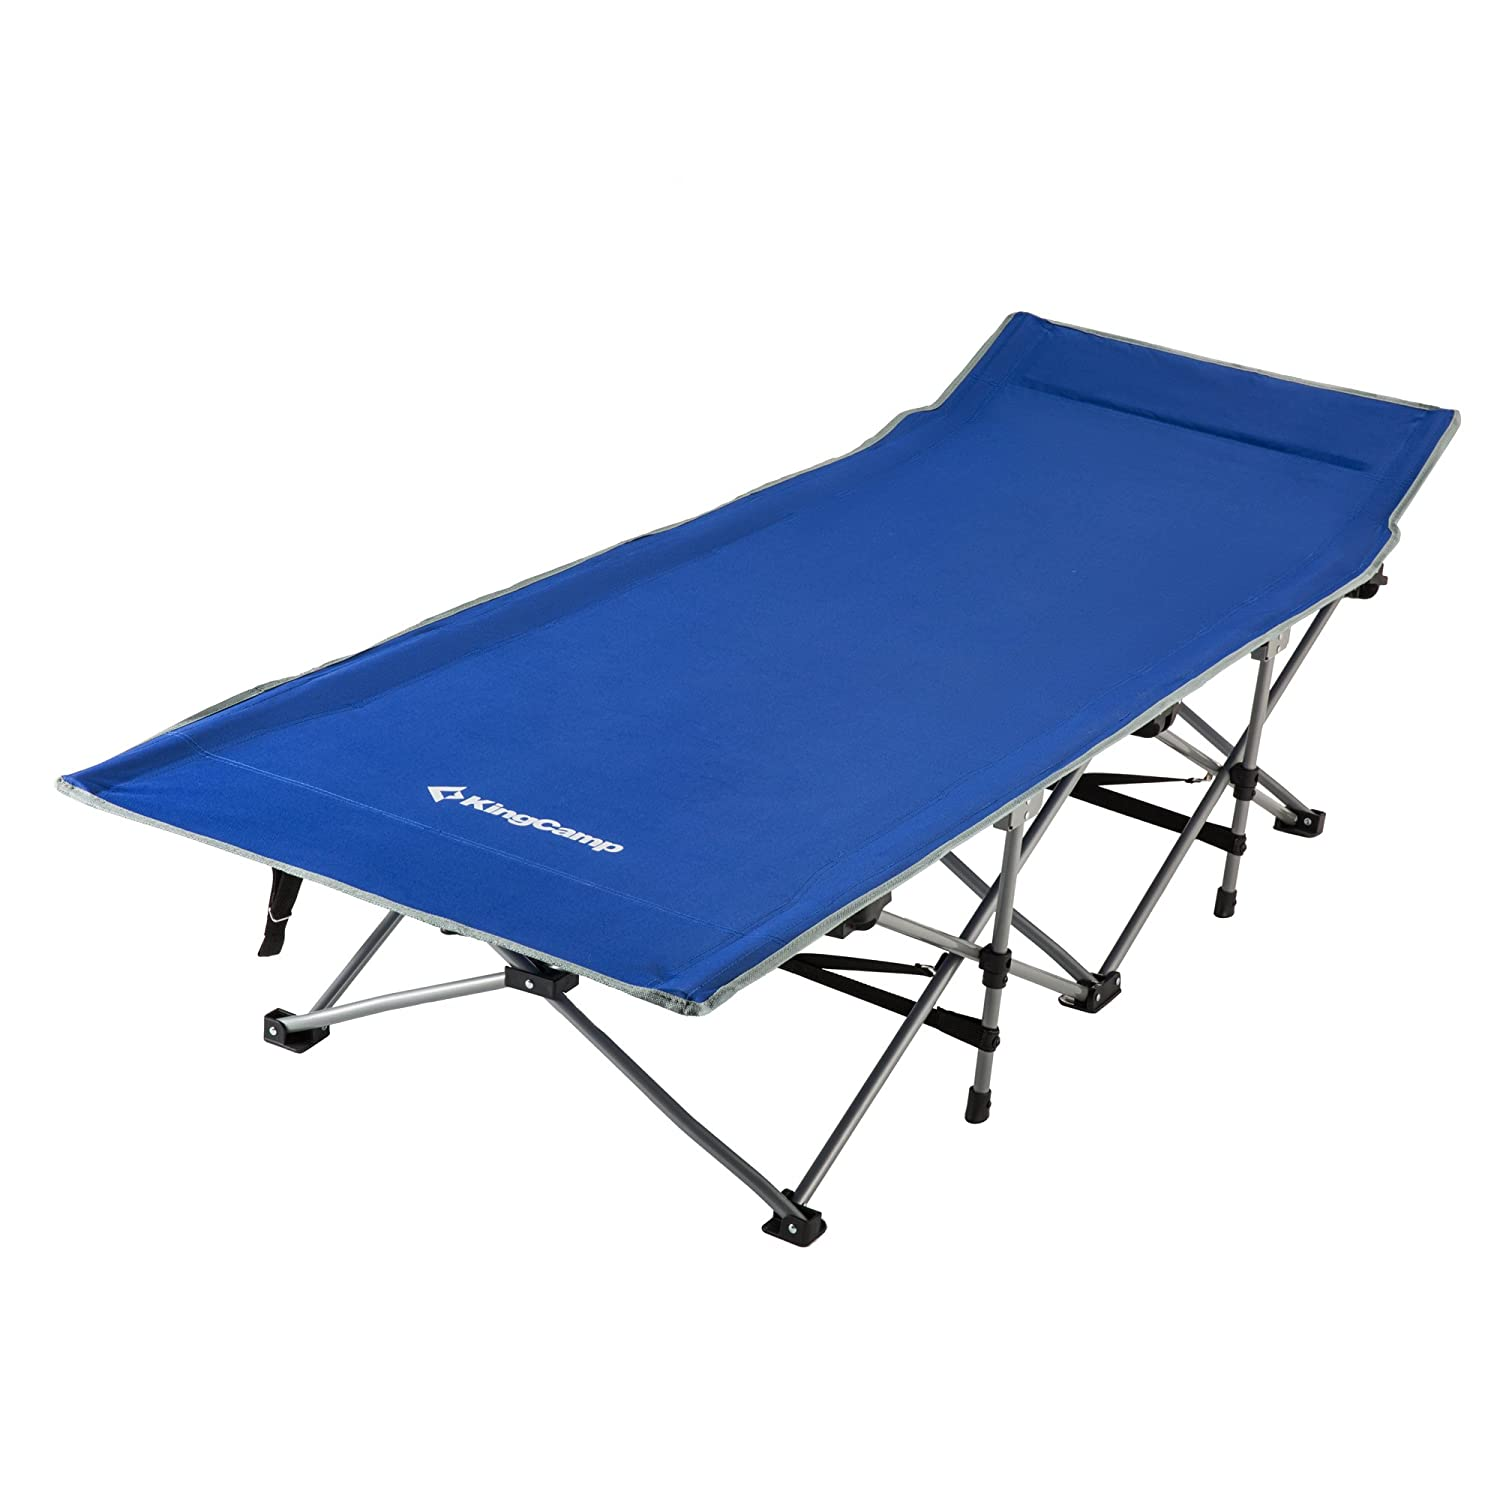 Best Camping Bed >> Best Camping Cot Top 5 Best Products